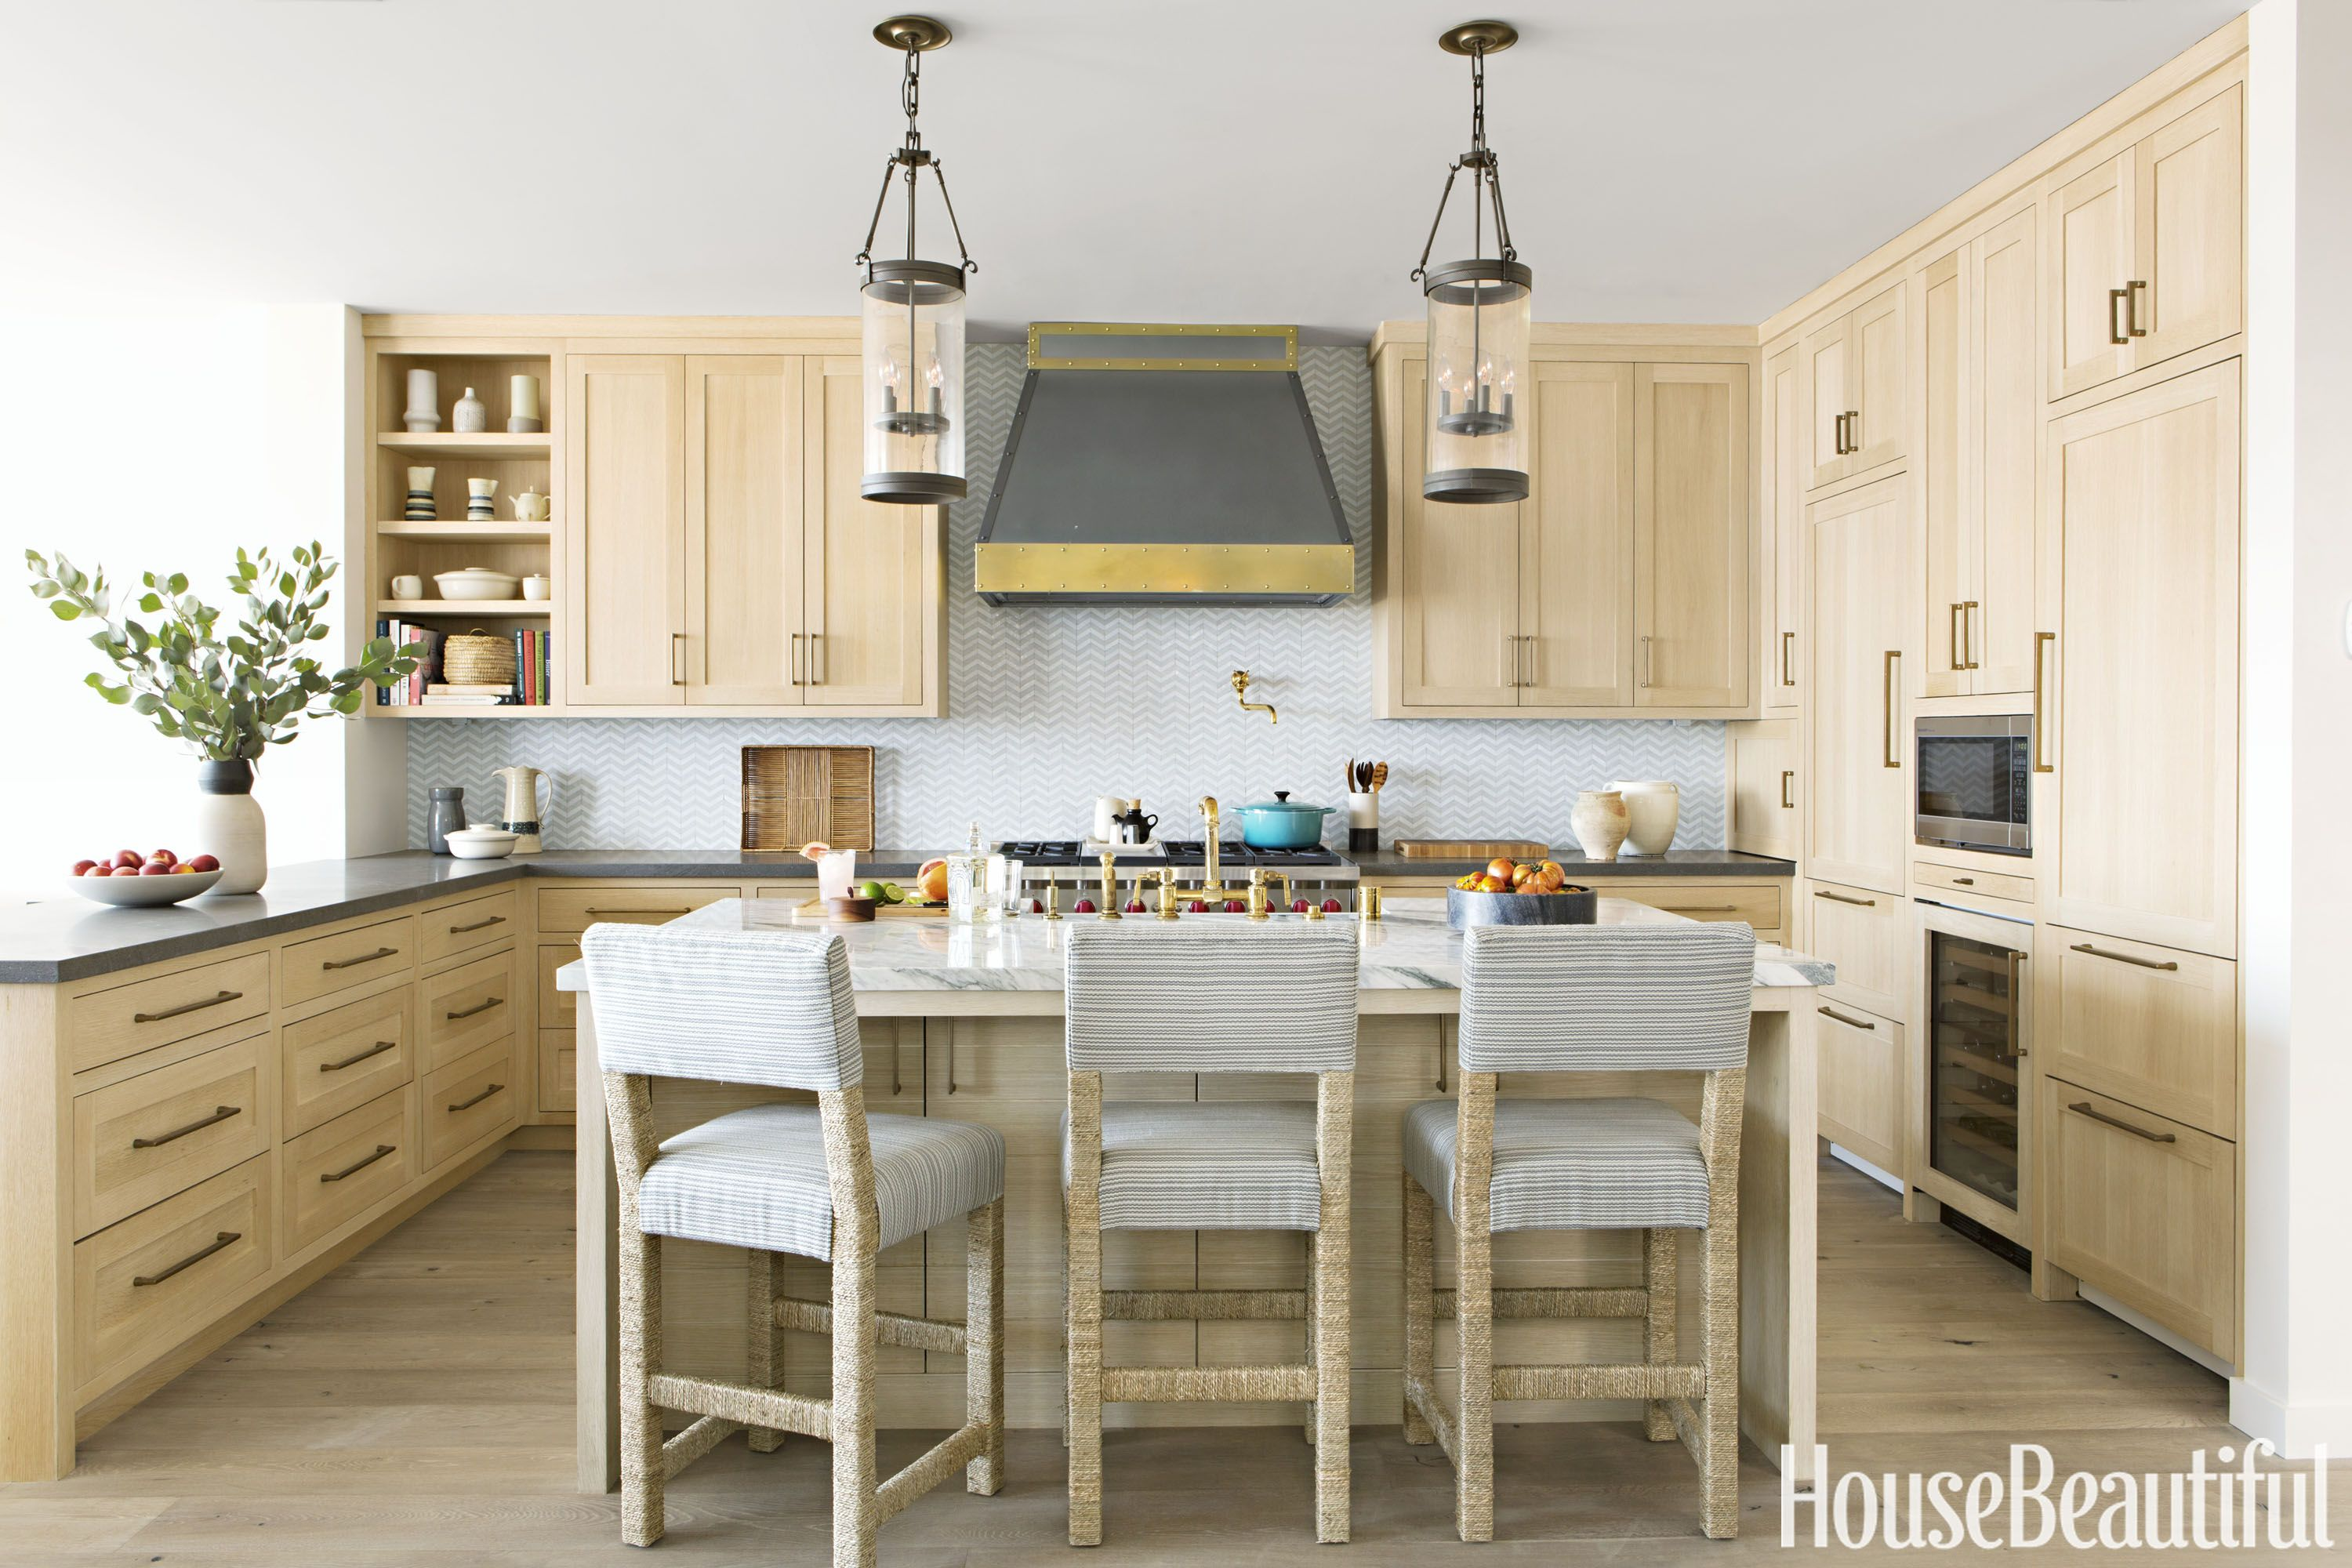 https://www.housebeautiful.com/lifestyle/fun-at-home/a1209/guess-the Zilian Cherry Wood Home Design Ideas on